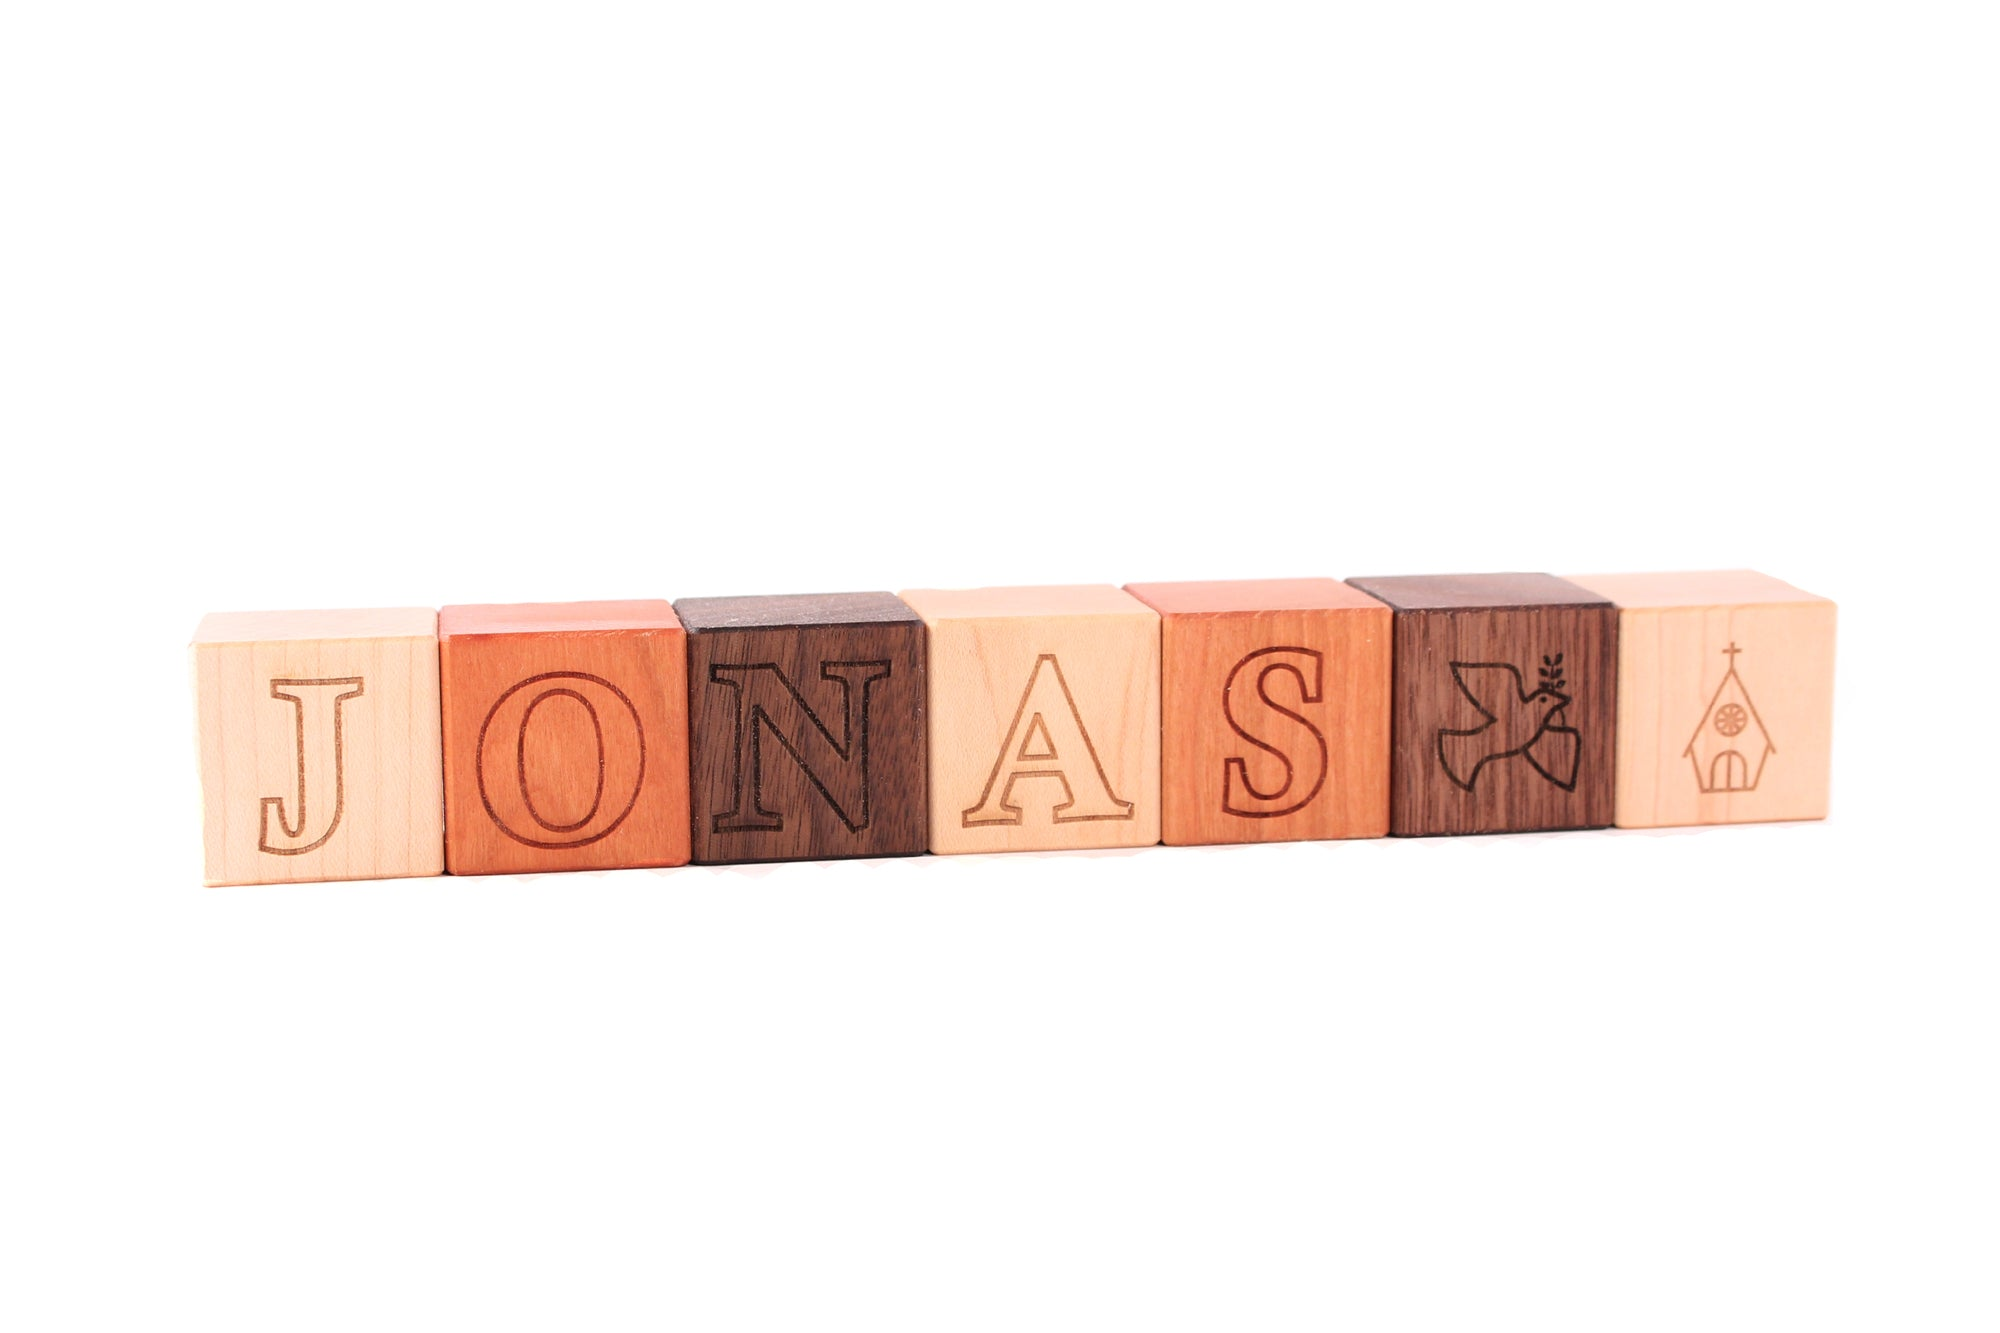 a66970b60241a baby baptism wooden name blocks - unique heirloom christening gift